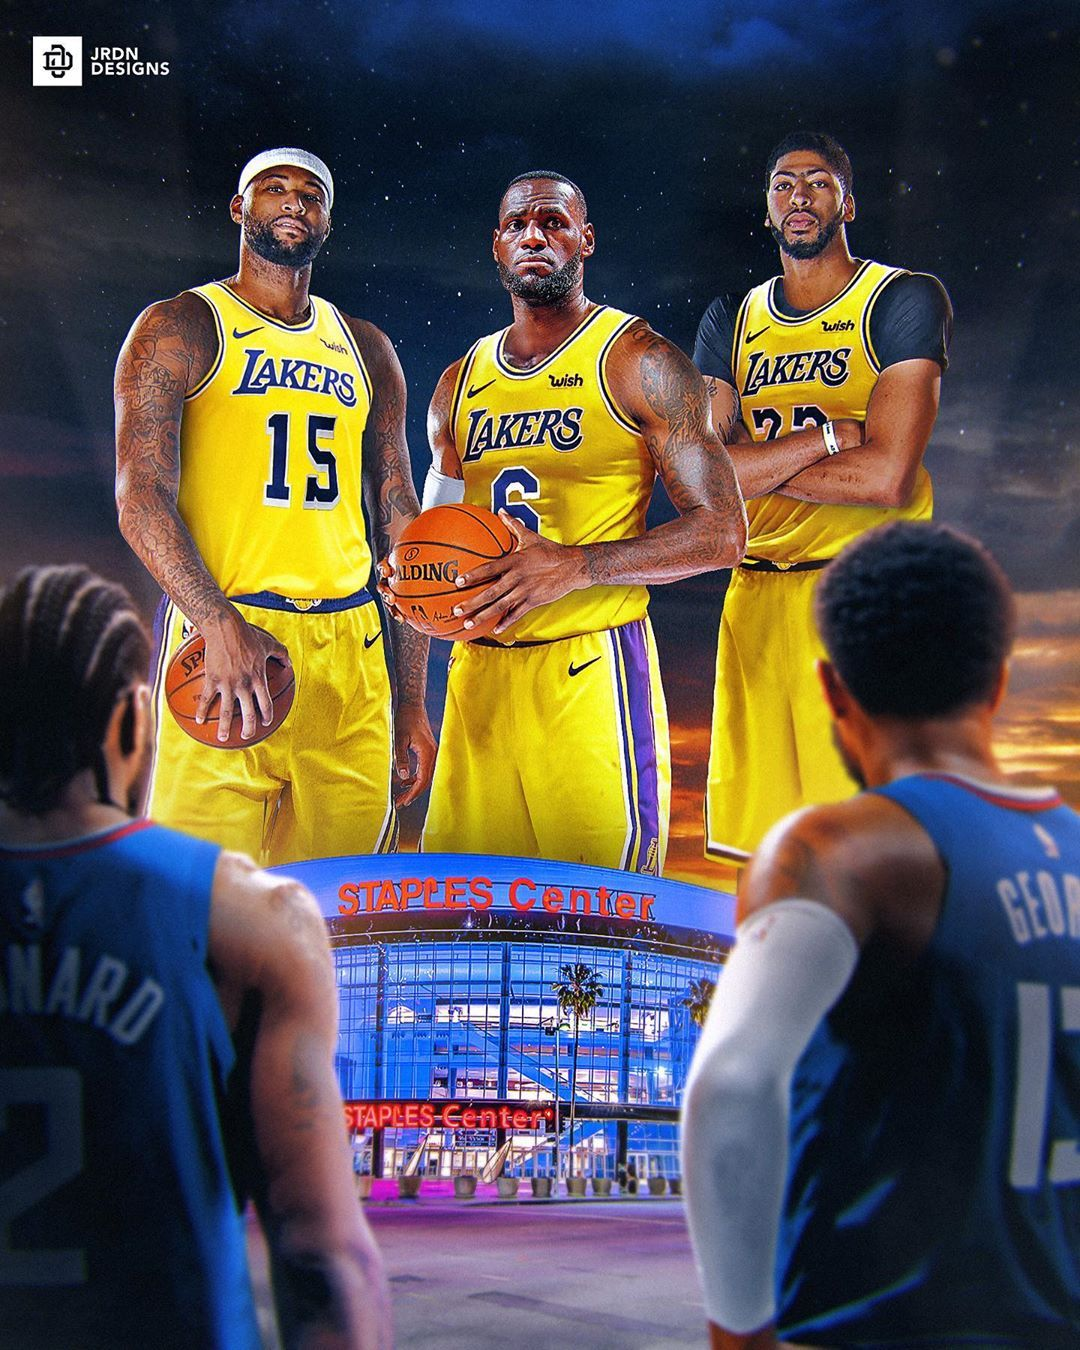 Sports Designs By Jordan Fb On Instagram The Battle Of La Who S The Best Team Of La Laker Lebron James Lakers Team Usa Basketball Basketball Players Nba